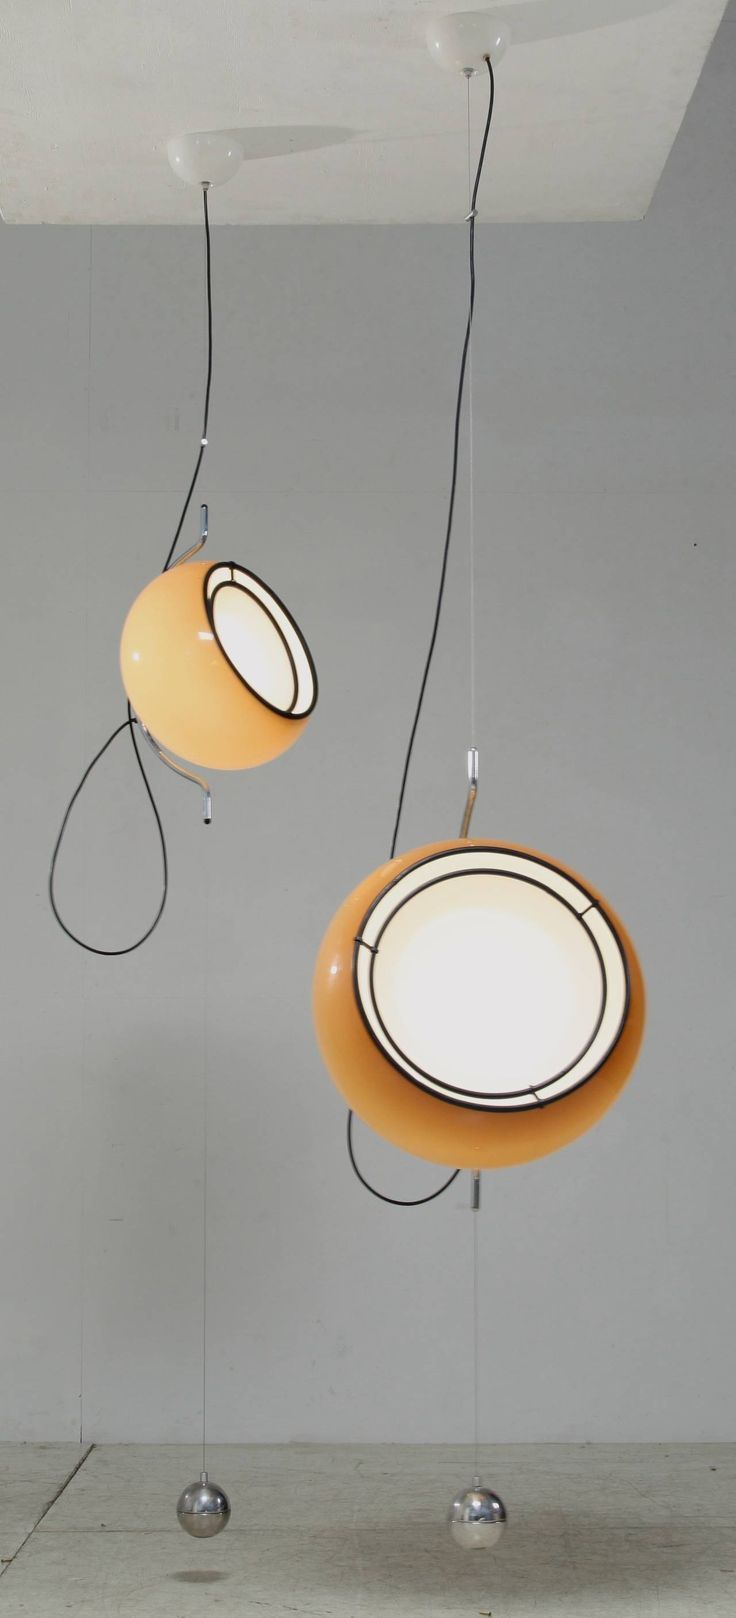 contemporary bathroom helius lighting. Contemporary 2 Helius Lighting. Pair Gae Aulenti Plastic Pendants For Guzzini, Italy, 1970s Bathroom Lighting E